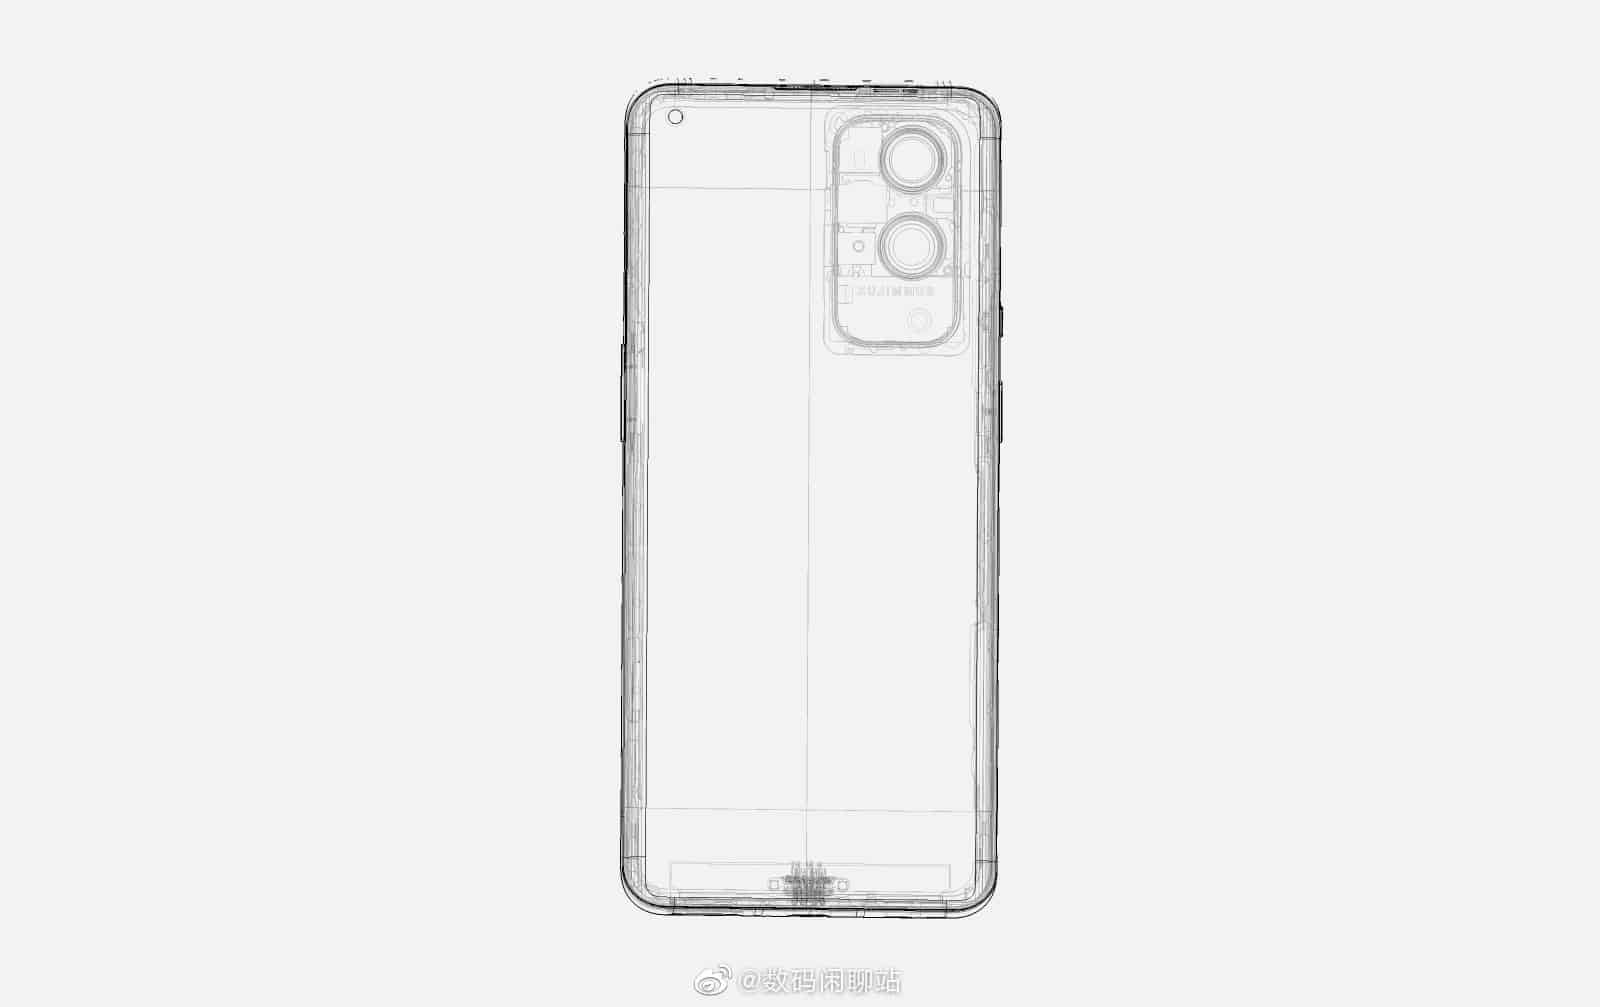 OnePlus 9 Pro Schematics Shed More Light On The Upcoming